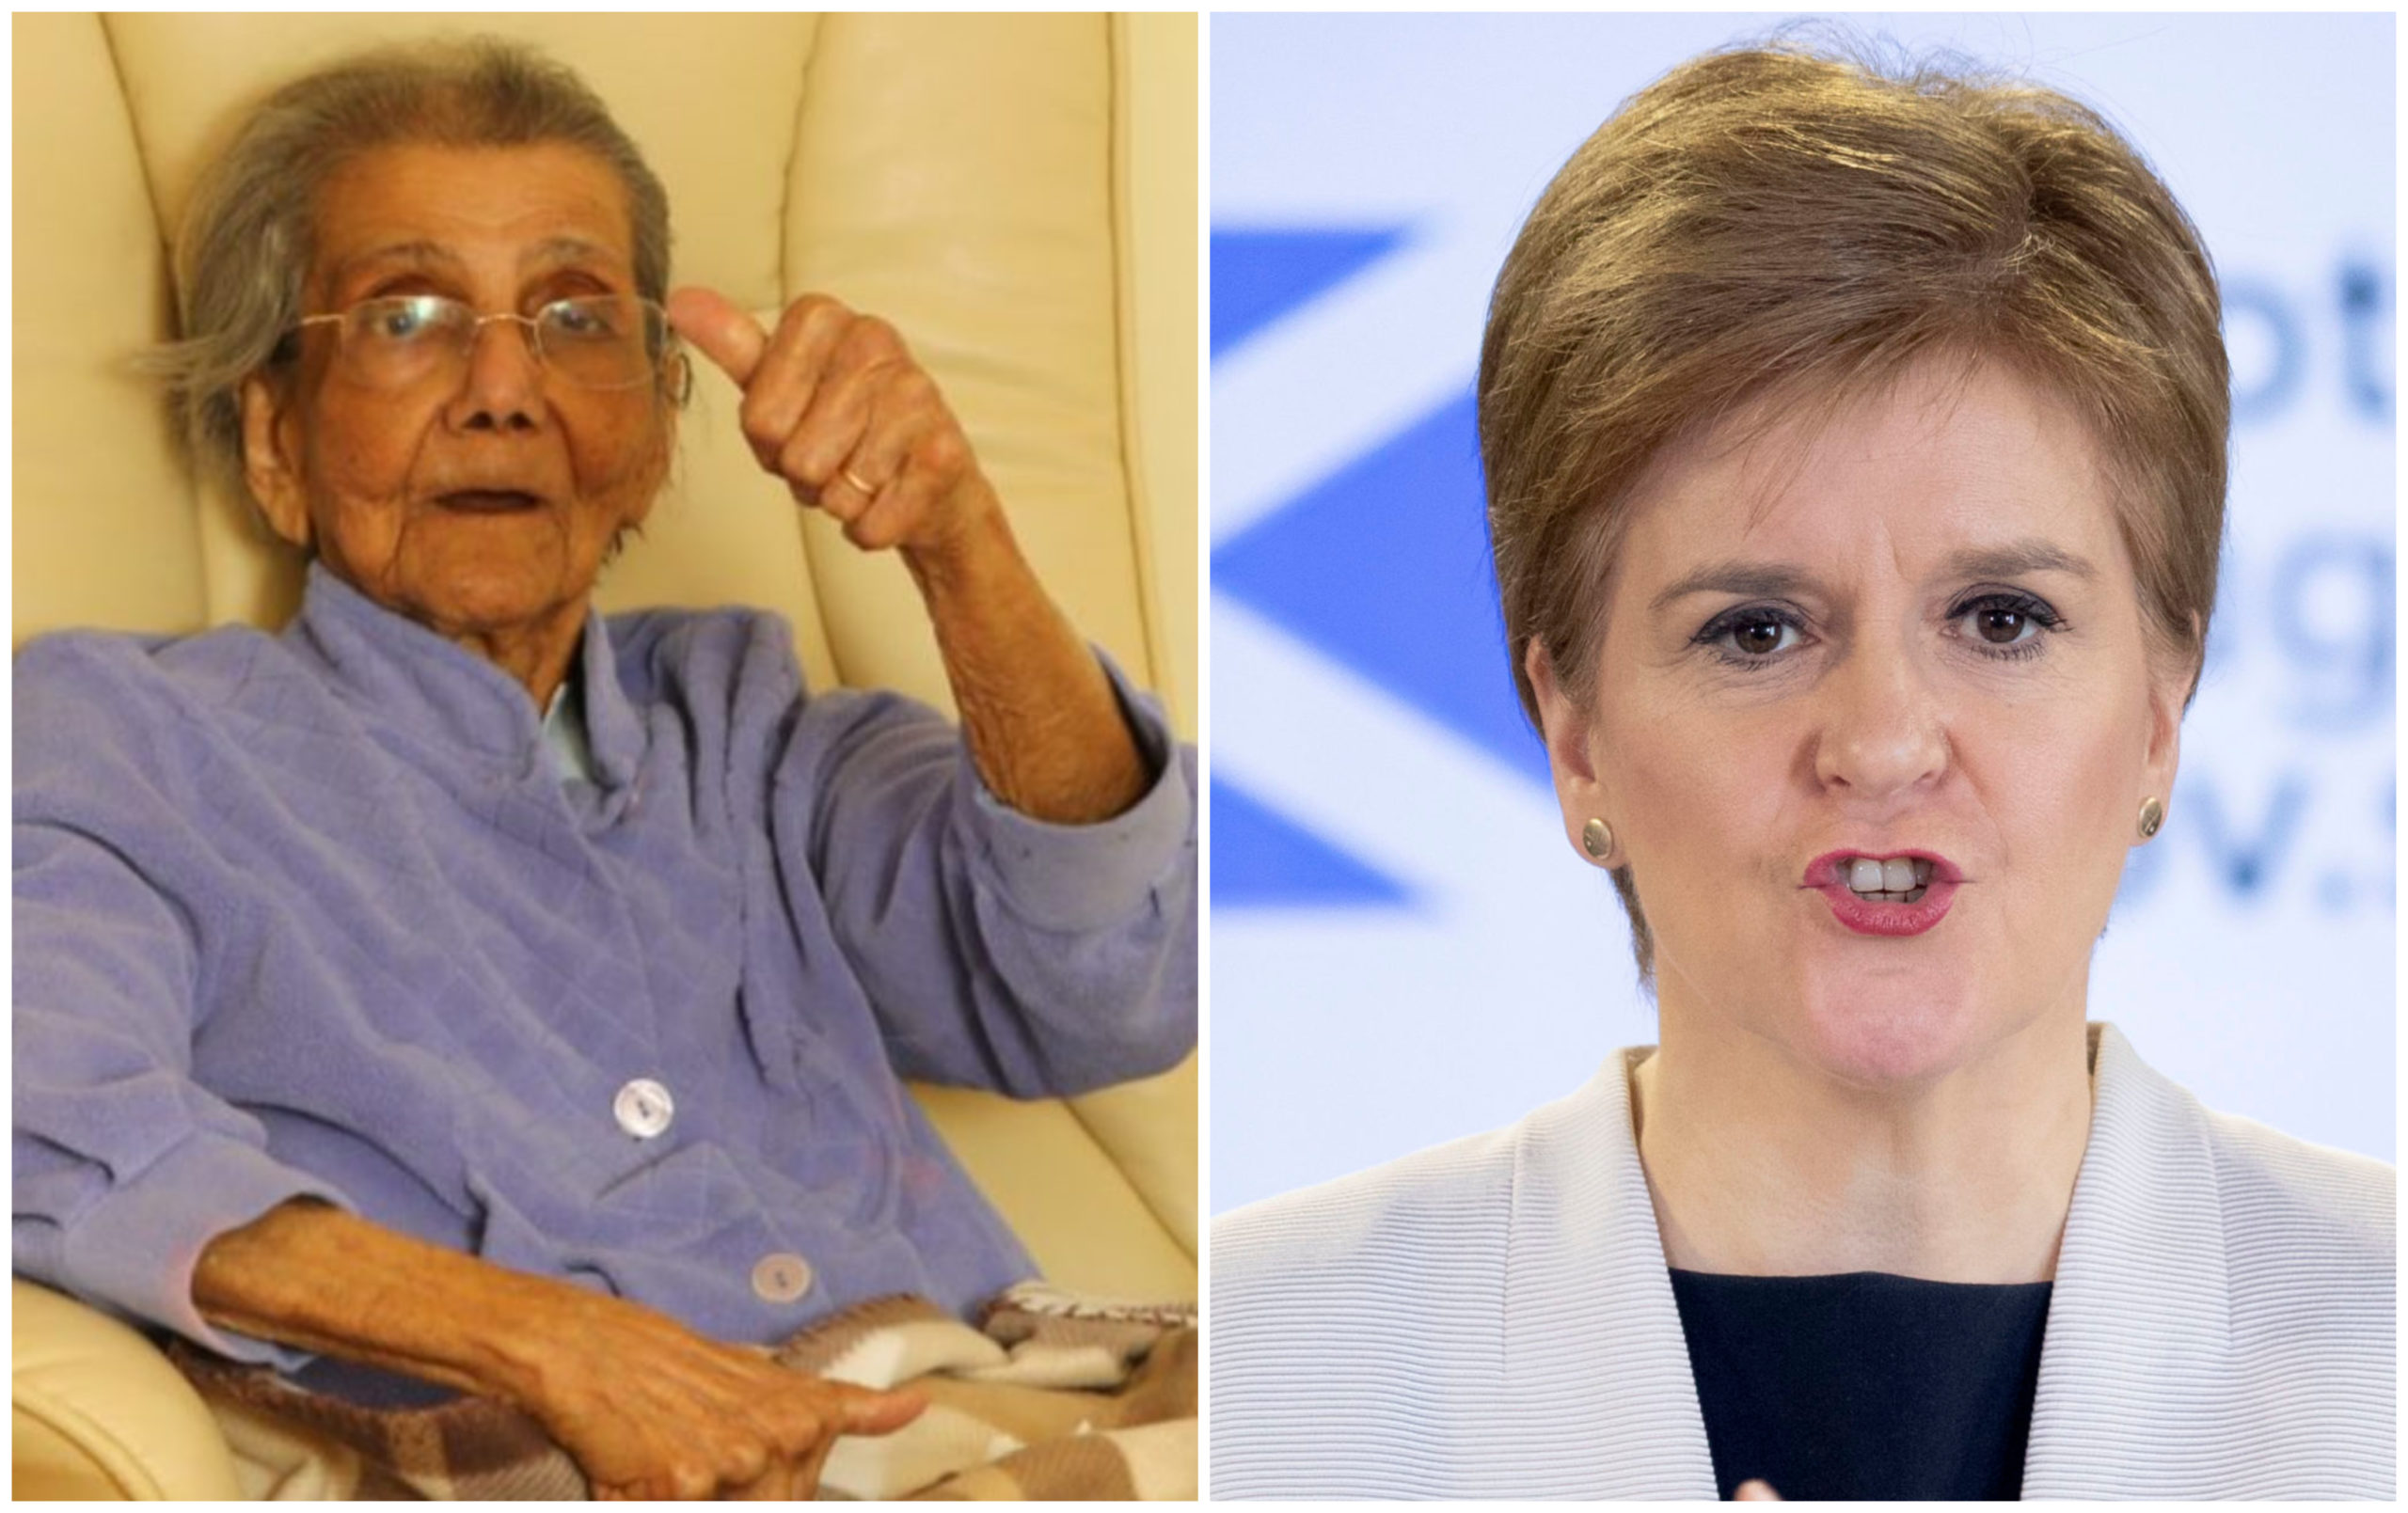 The amazing story of Daphne Shah has been hailed by First Minister Nicola Sturgeon.